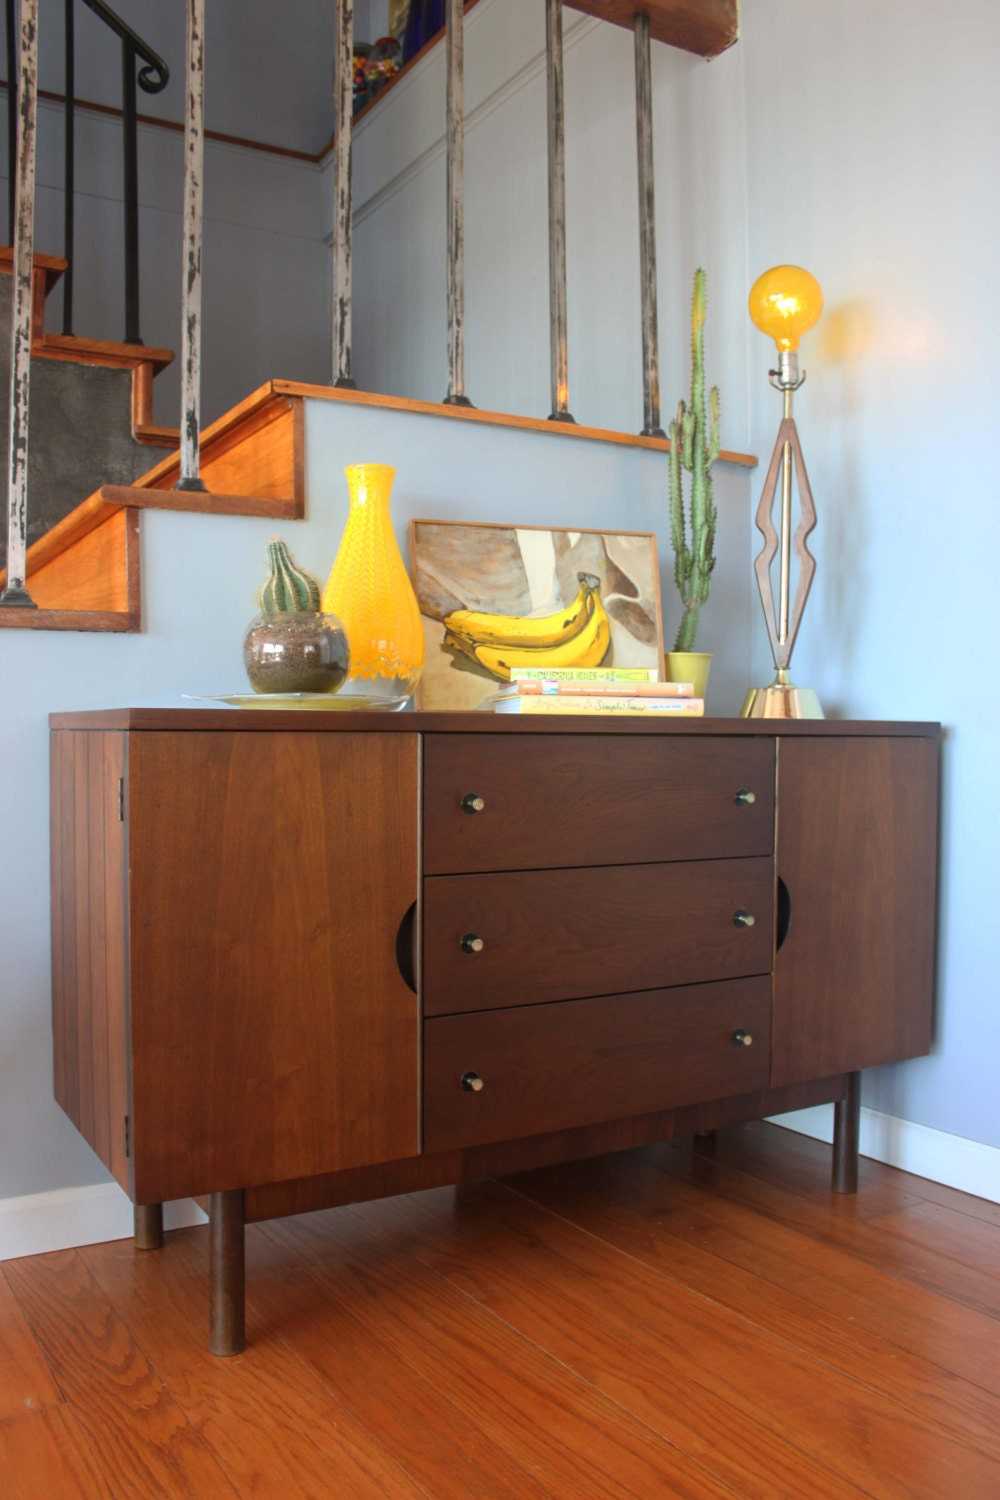 vintage mid century modern credenza buffet sideboard. Black Bedroom Furniture Sets. Home Design Ideas